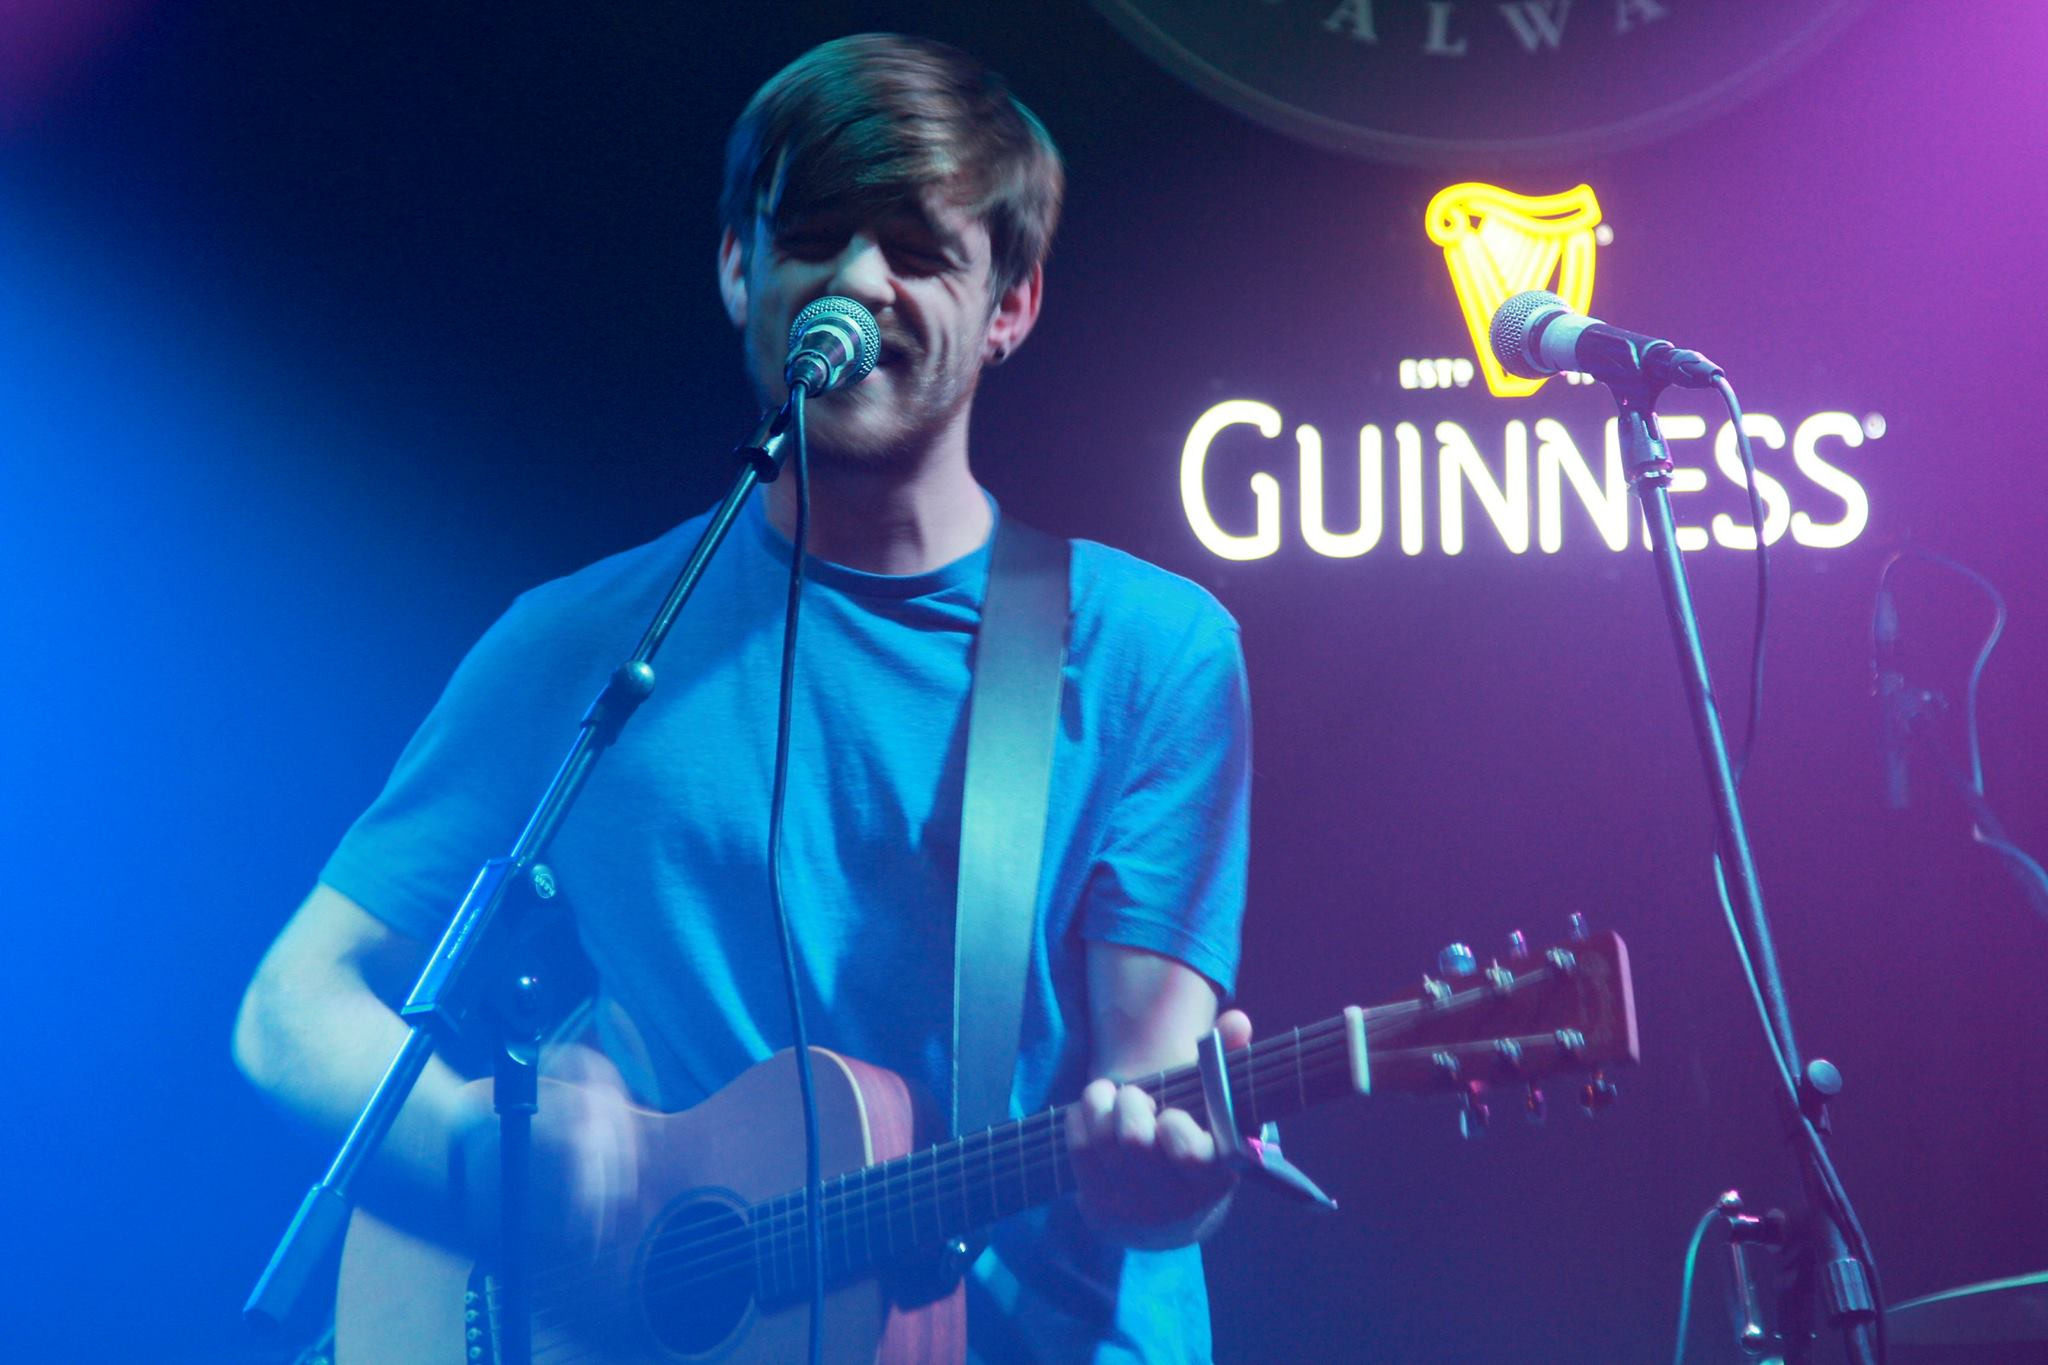 Chris Haze @ The Guinness Amplify Live Stages.jpg